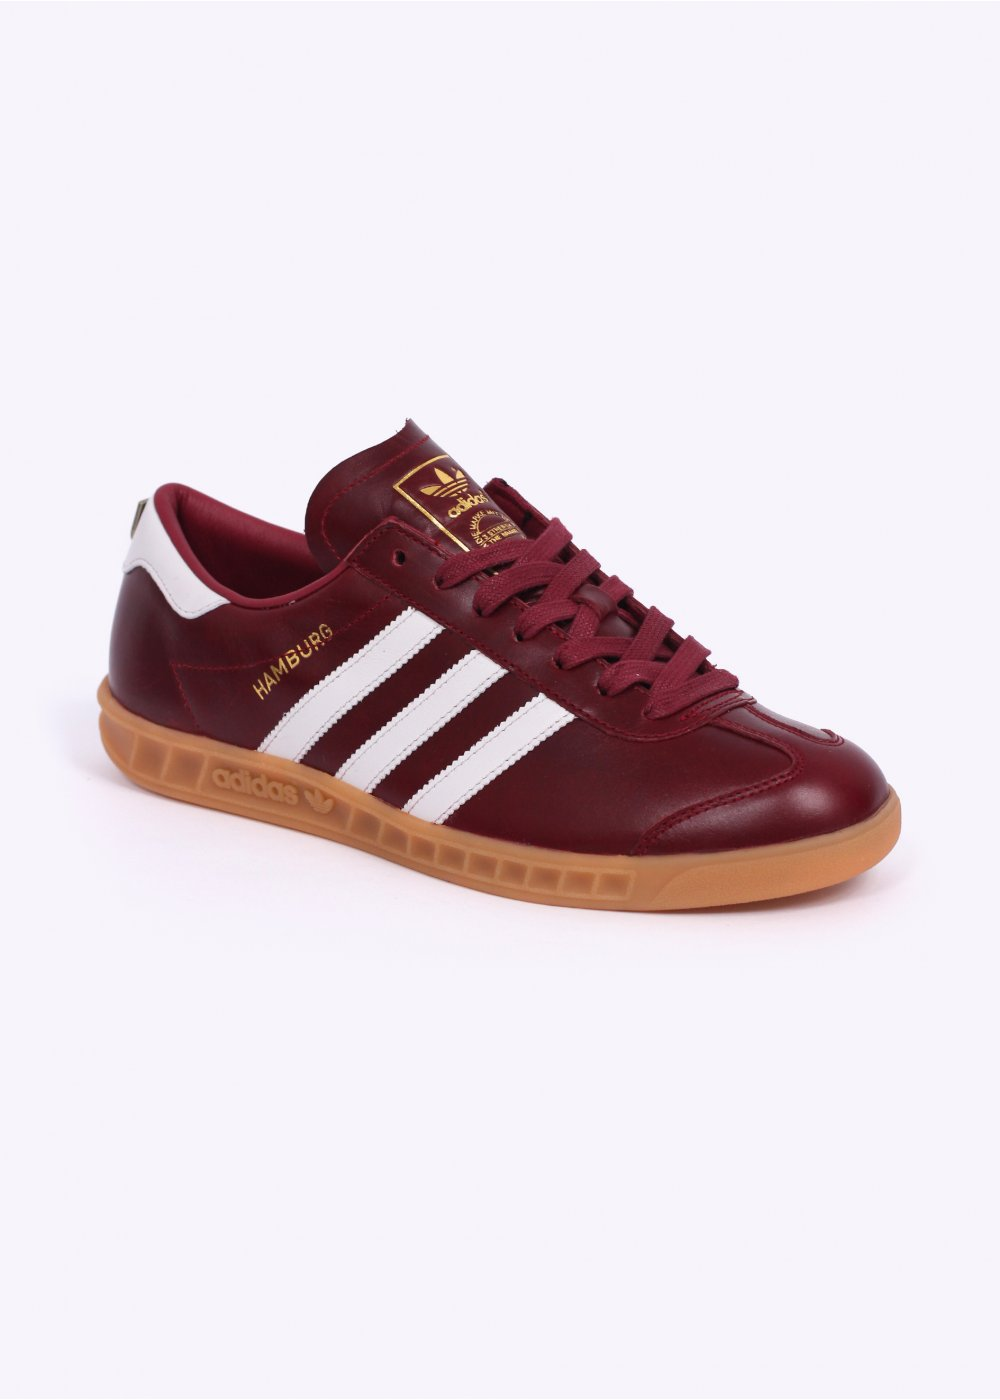 burgundy adidas trainers